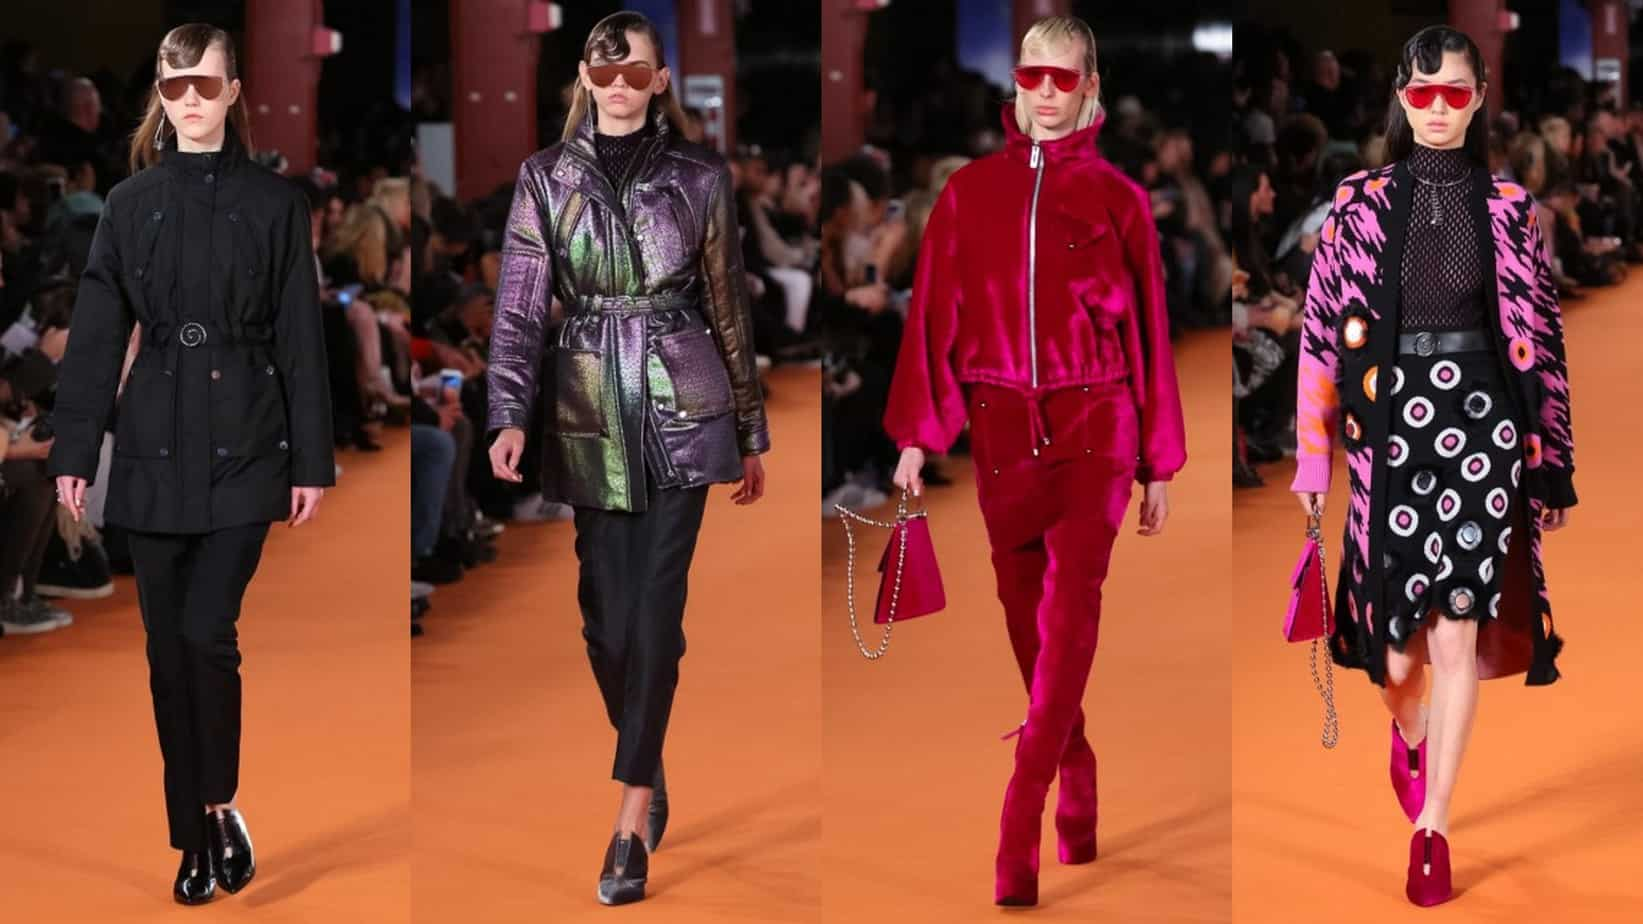 Opening Ceremony NYFW FW 2016 Collection